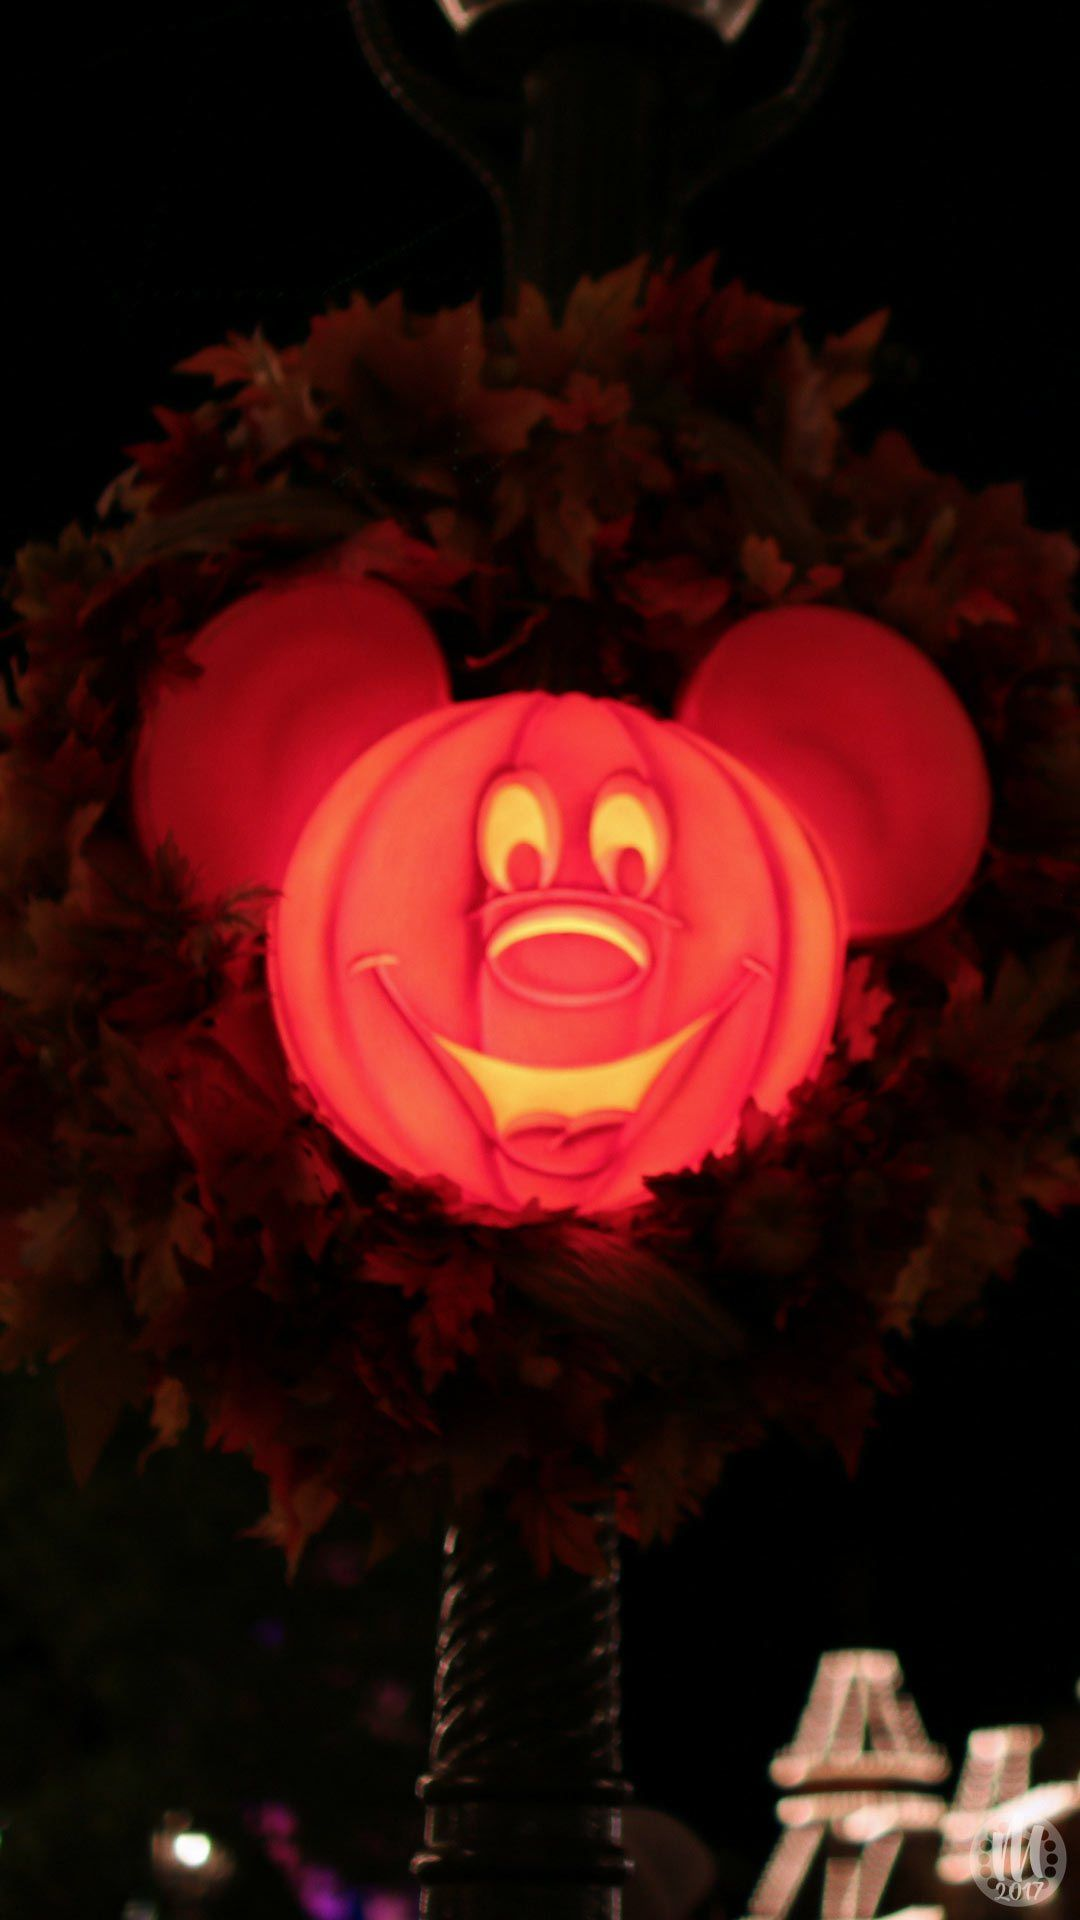 Disney Halloween Iphone Wallpapers From Magic Kingdom Halloween Wallpaper Android Wallpaper Hd Wallpaper Android